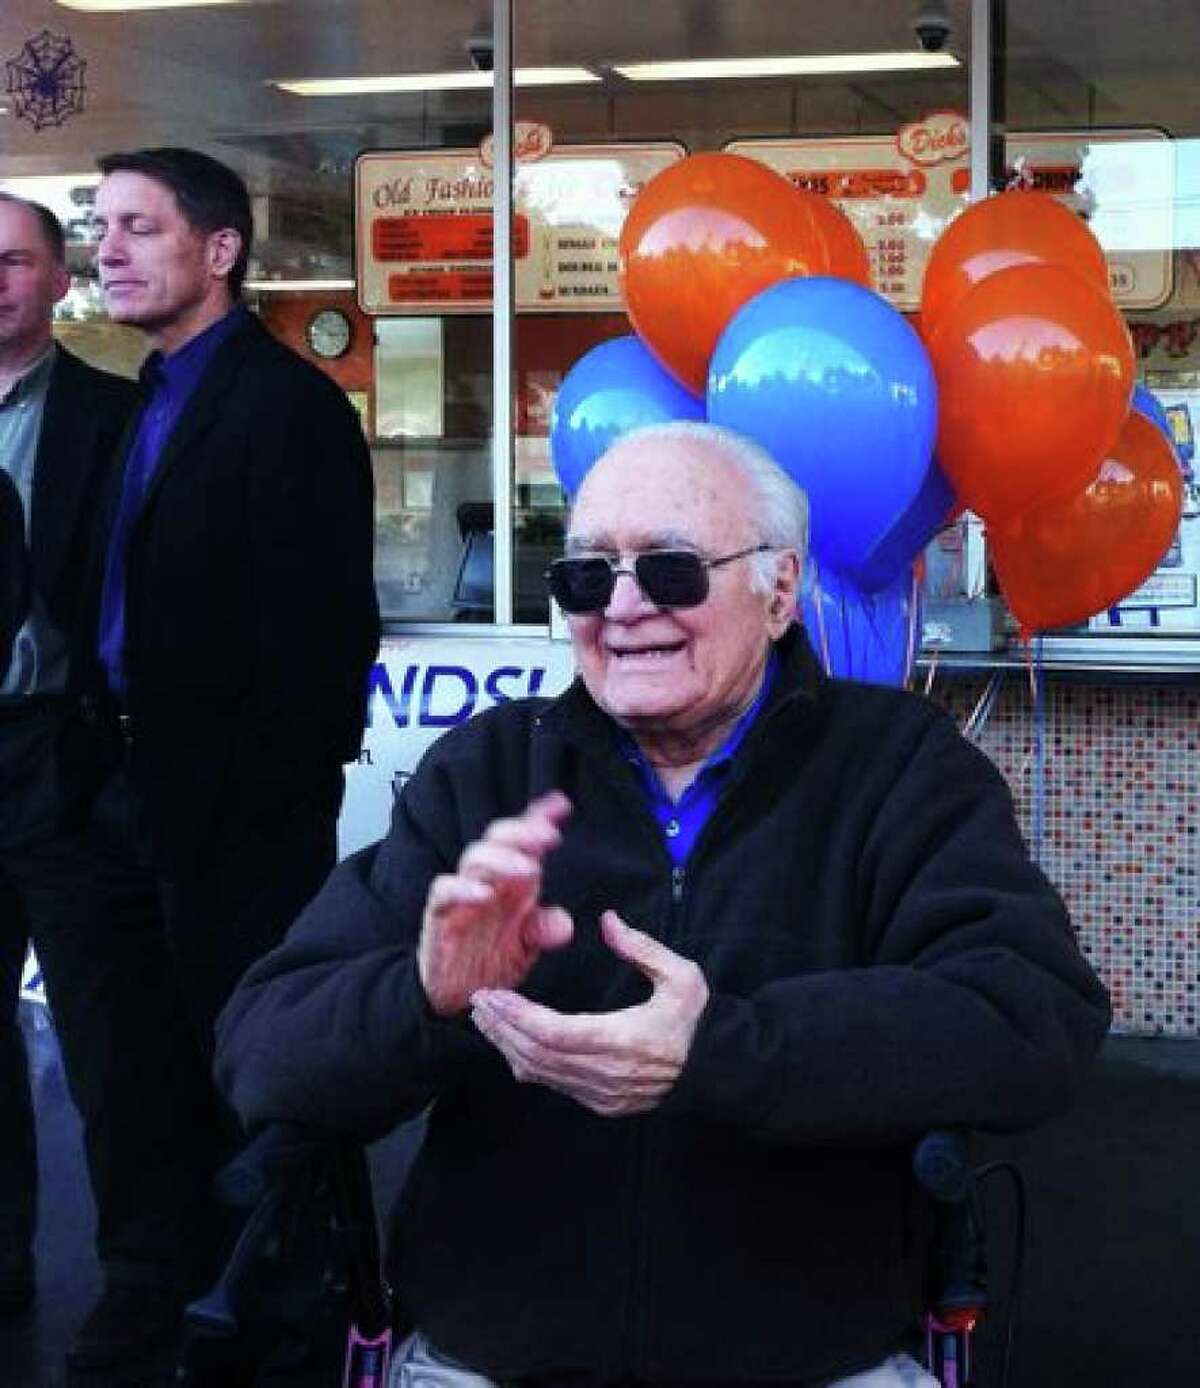 Dick Spady, co-founder and namesake of Dick's Drive-In, celebrated the announcement of the company's Edmonds location. The announcement was made at the original Wallingford location on Spady's 87th birthday.